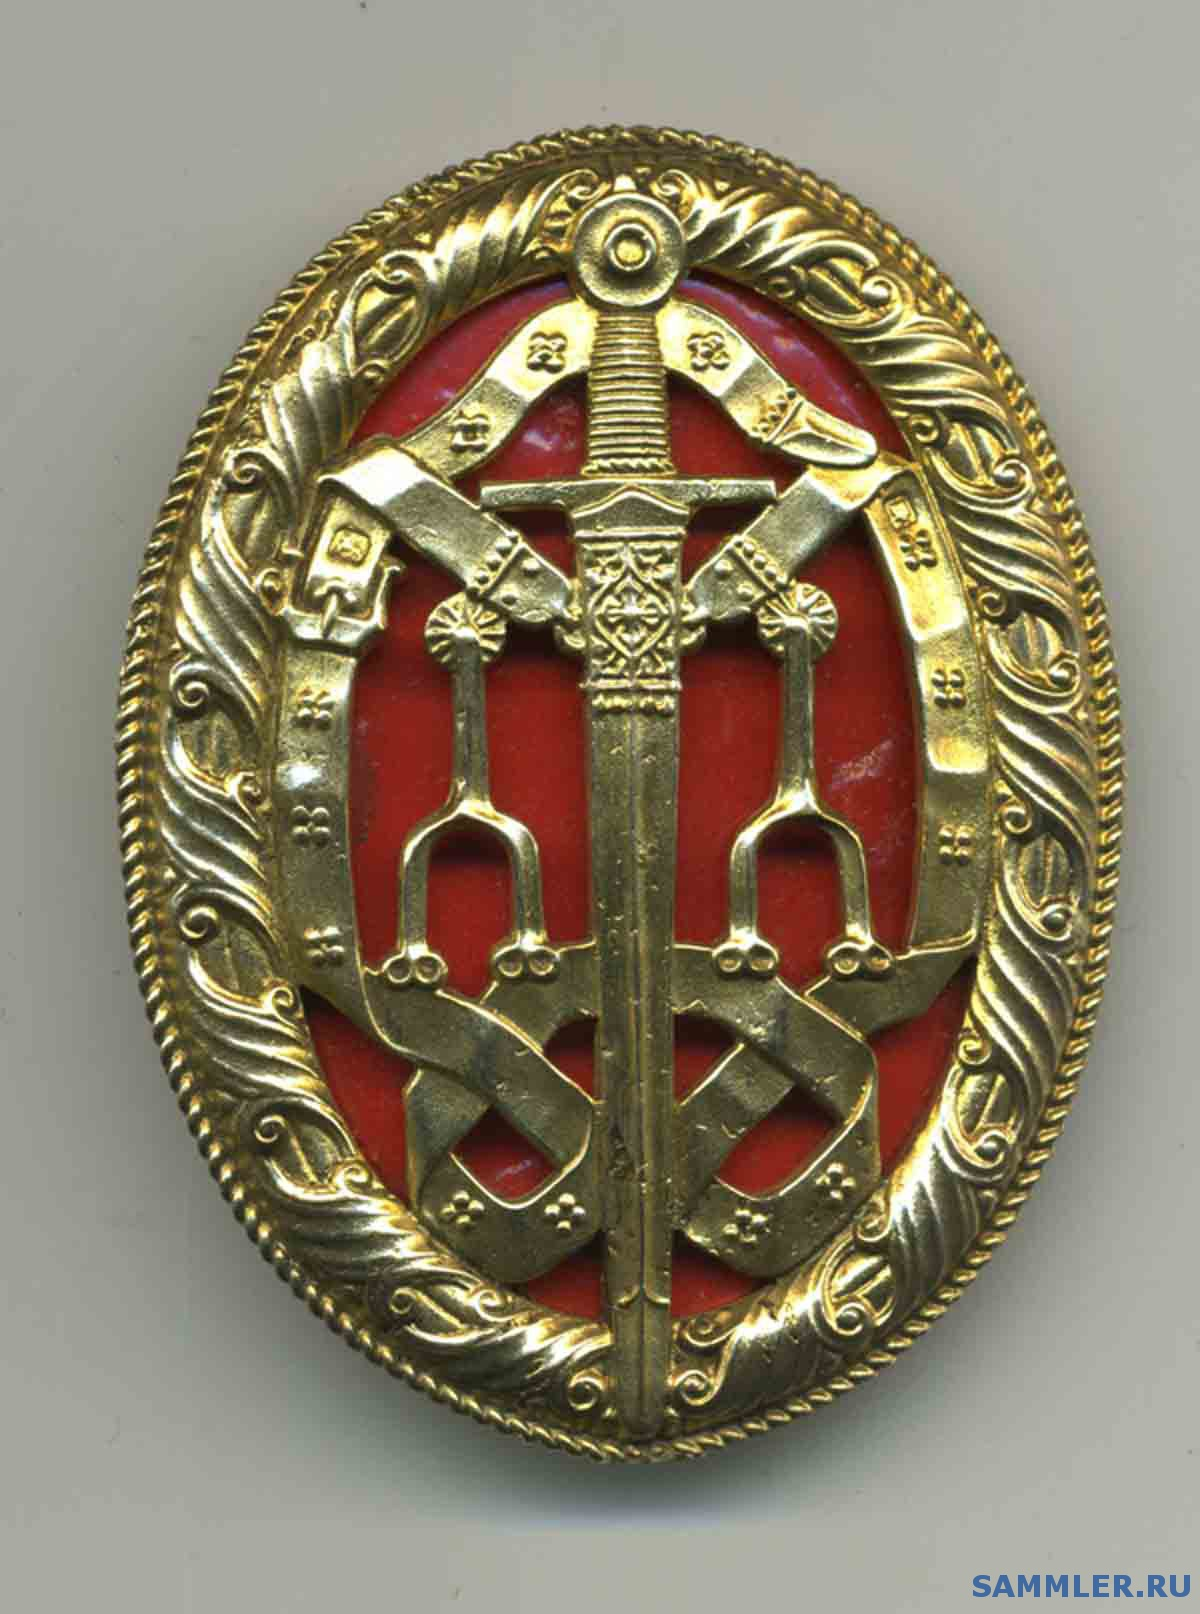 The_Knight_Bachelor__s_badge_2nd_type_.jpg